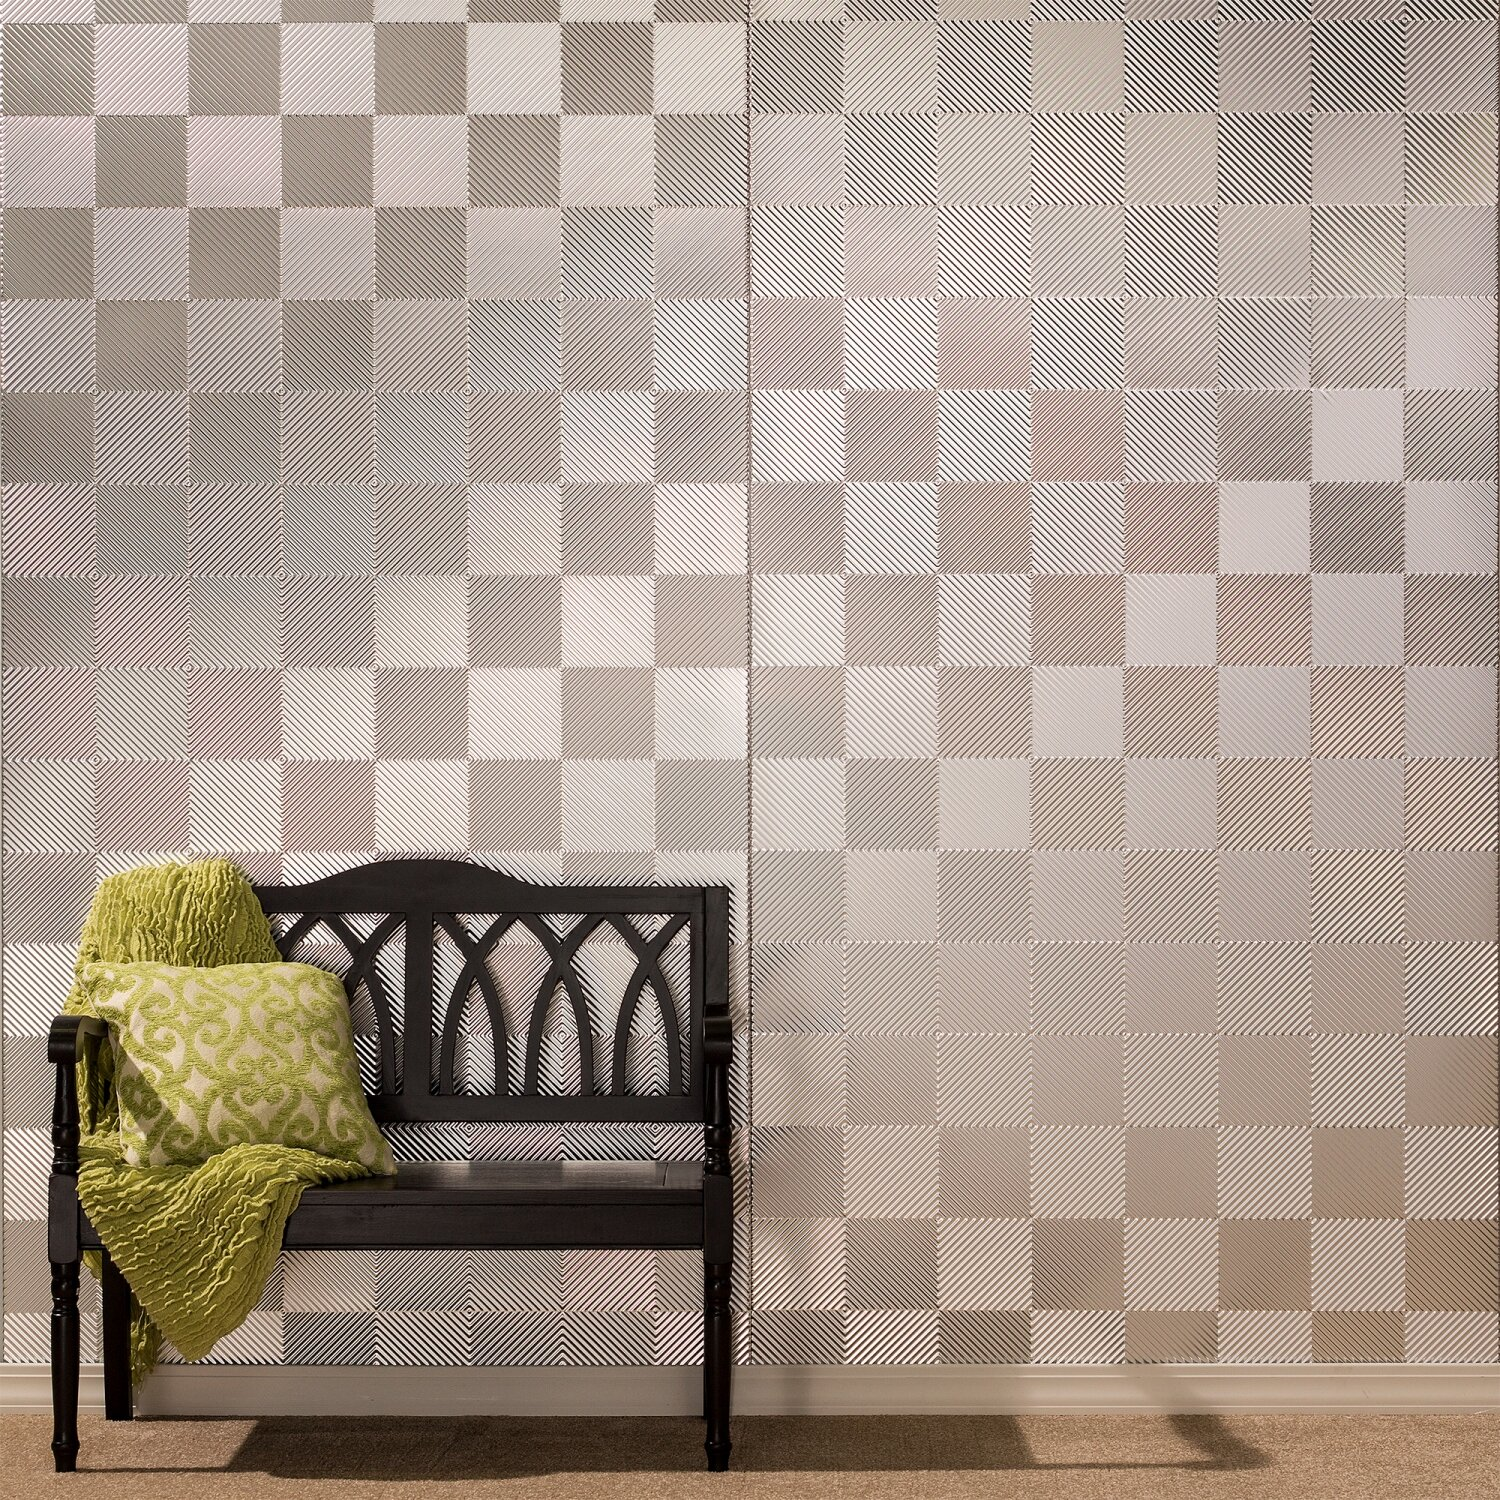 - Fasade Quattro 48'' X 96'' PVC Wall Paneling In Brushed Aluminum